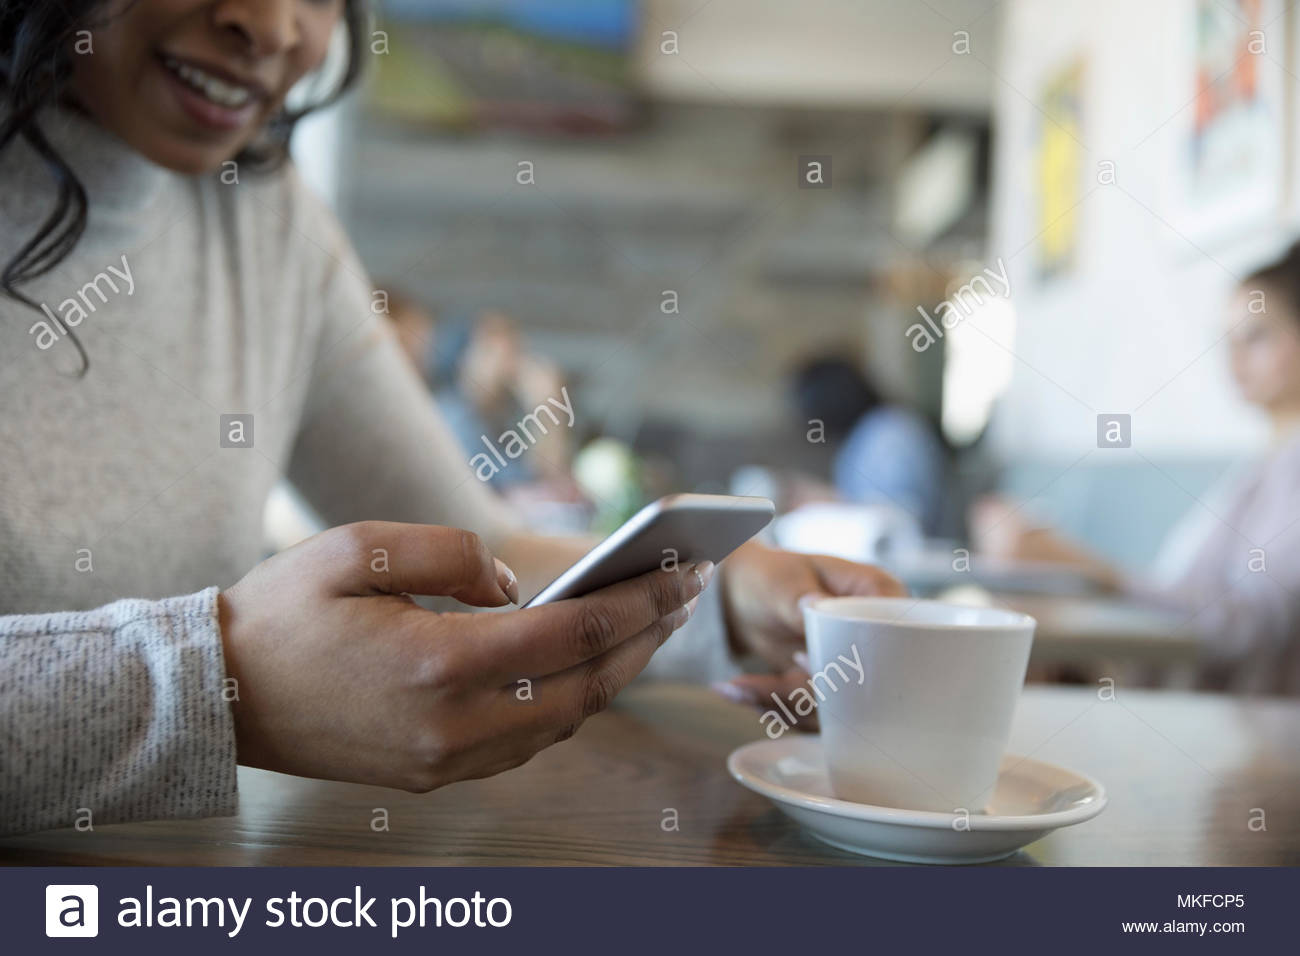 Close up woman using smart phone, drinking coffee in cafe - Stock Image